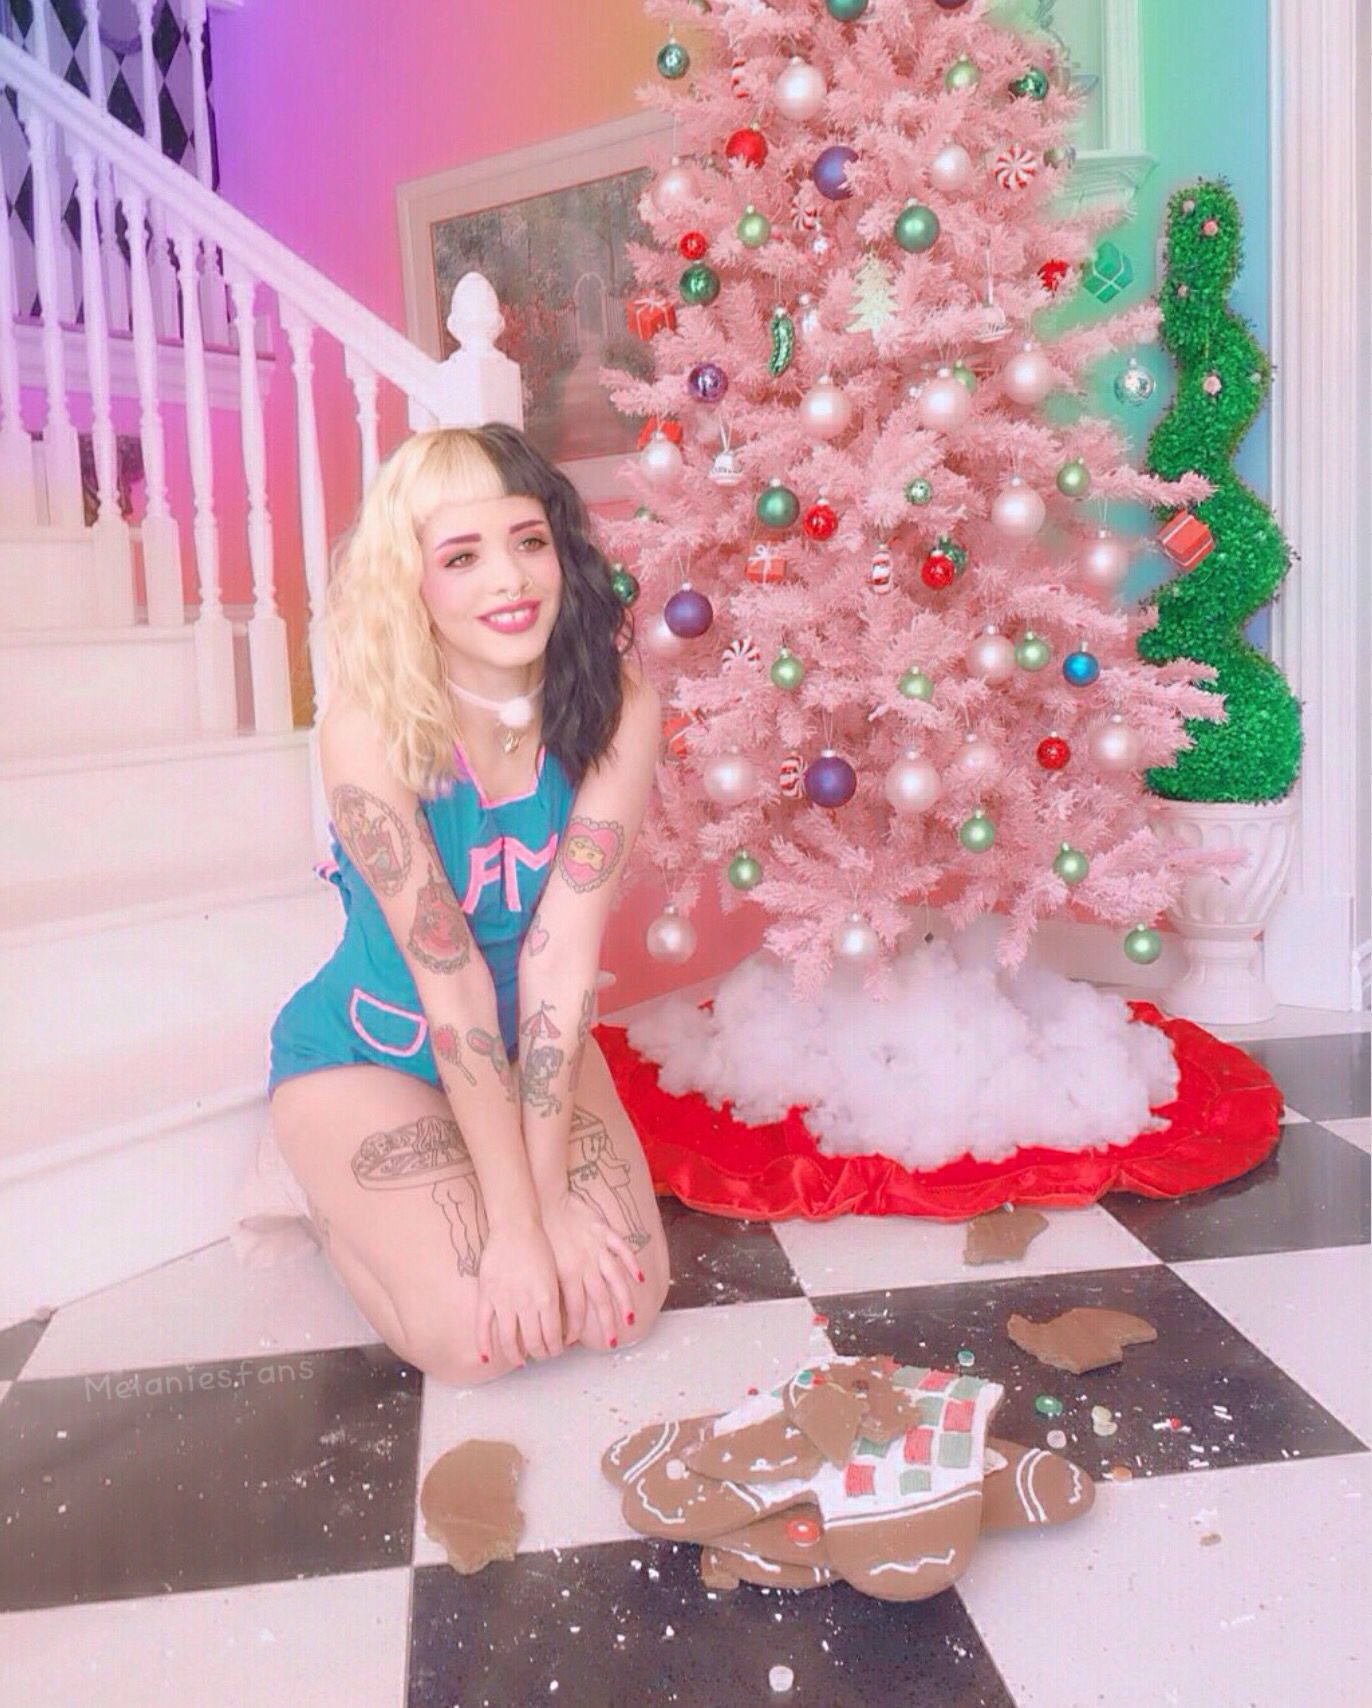 """Melanie Martinez posing with gingerbread man from her new Christmas song """"Gingerbread Man"""""""